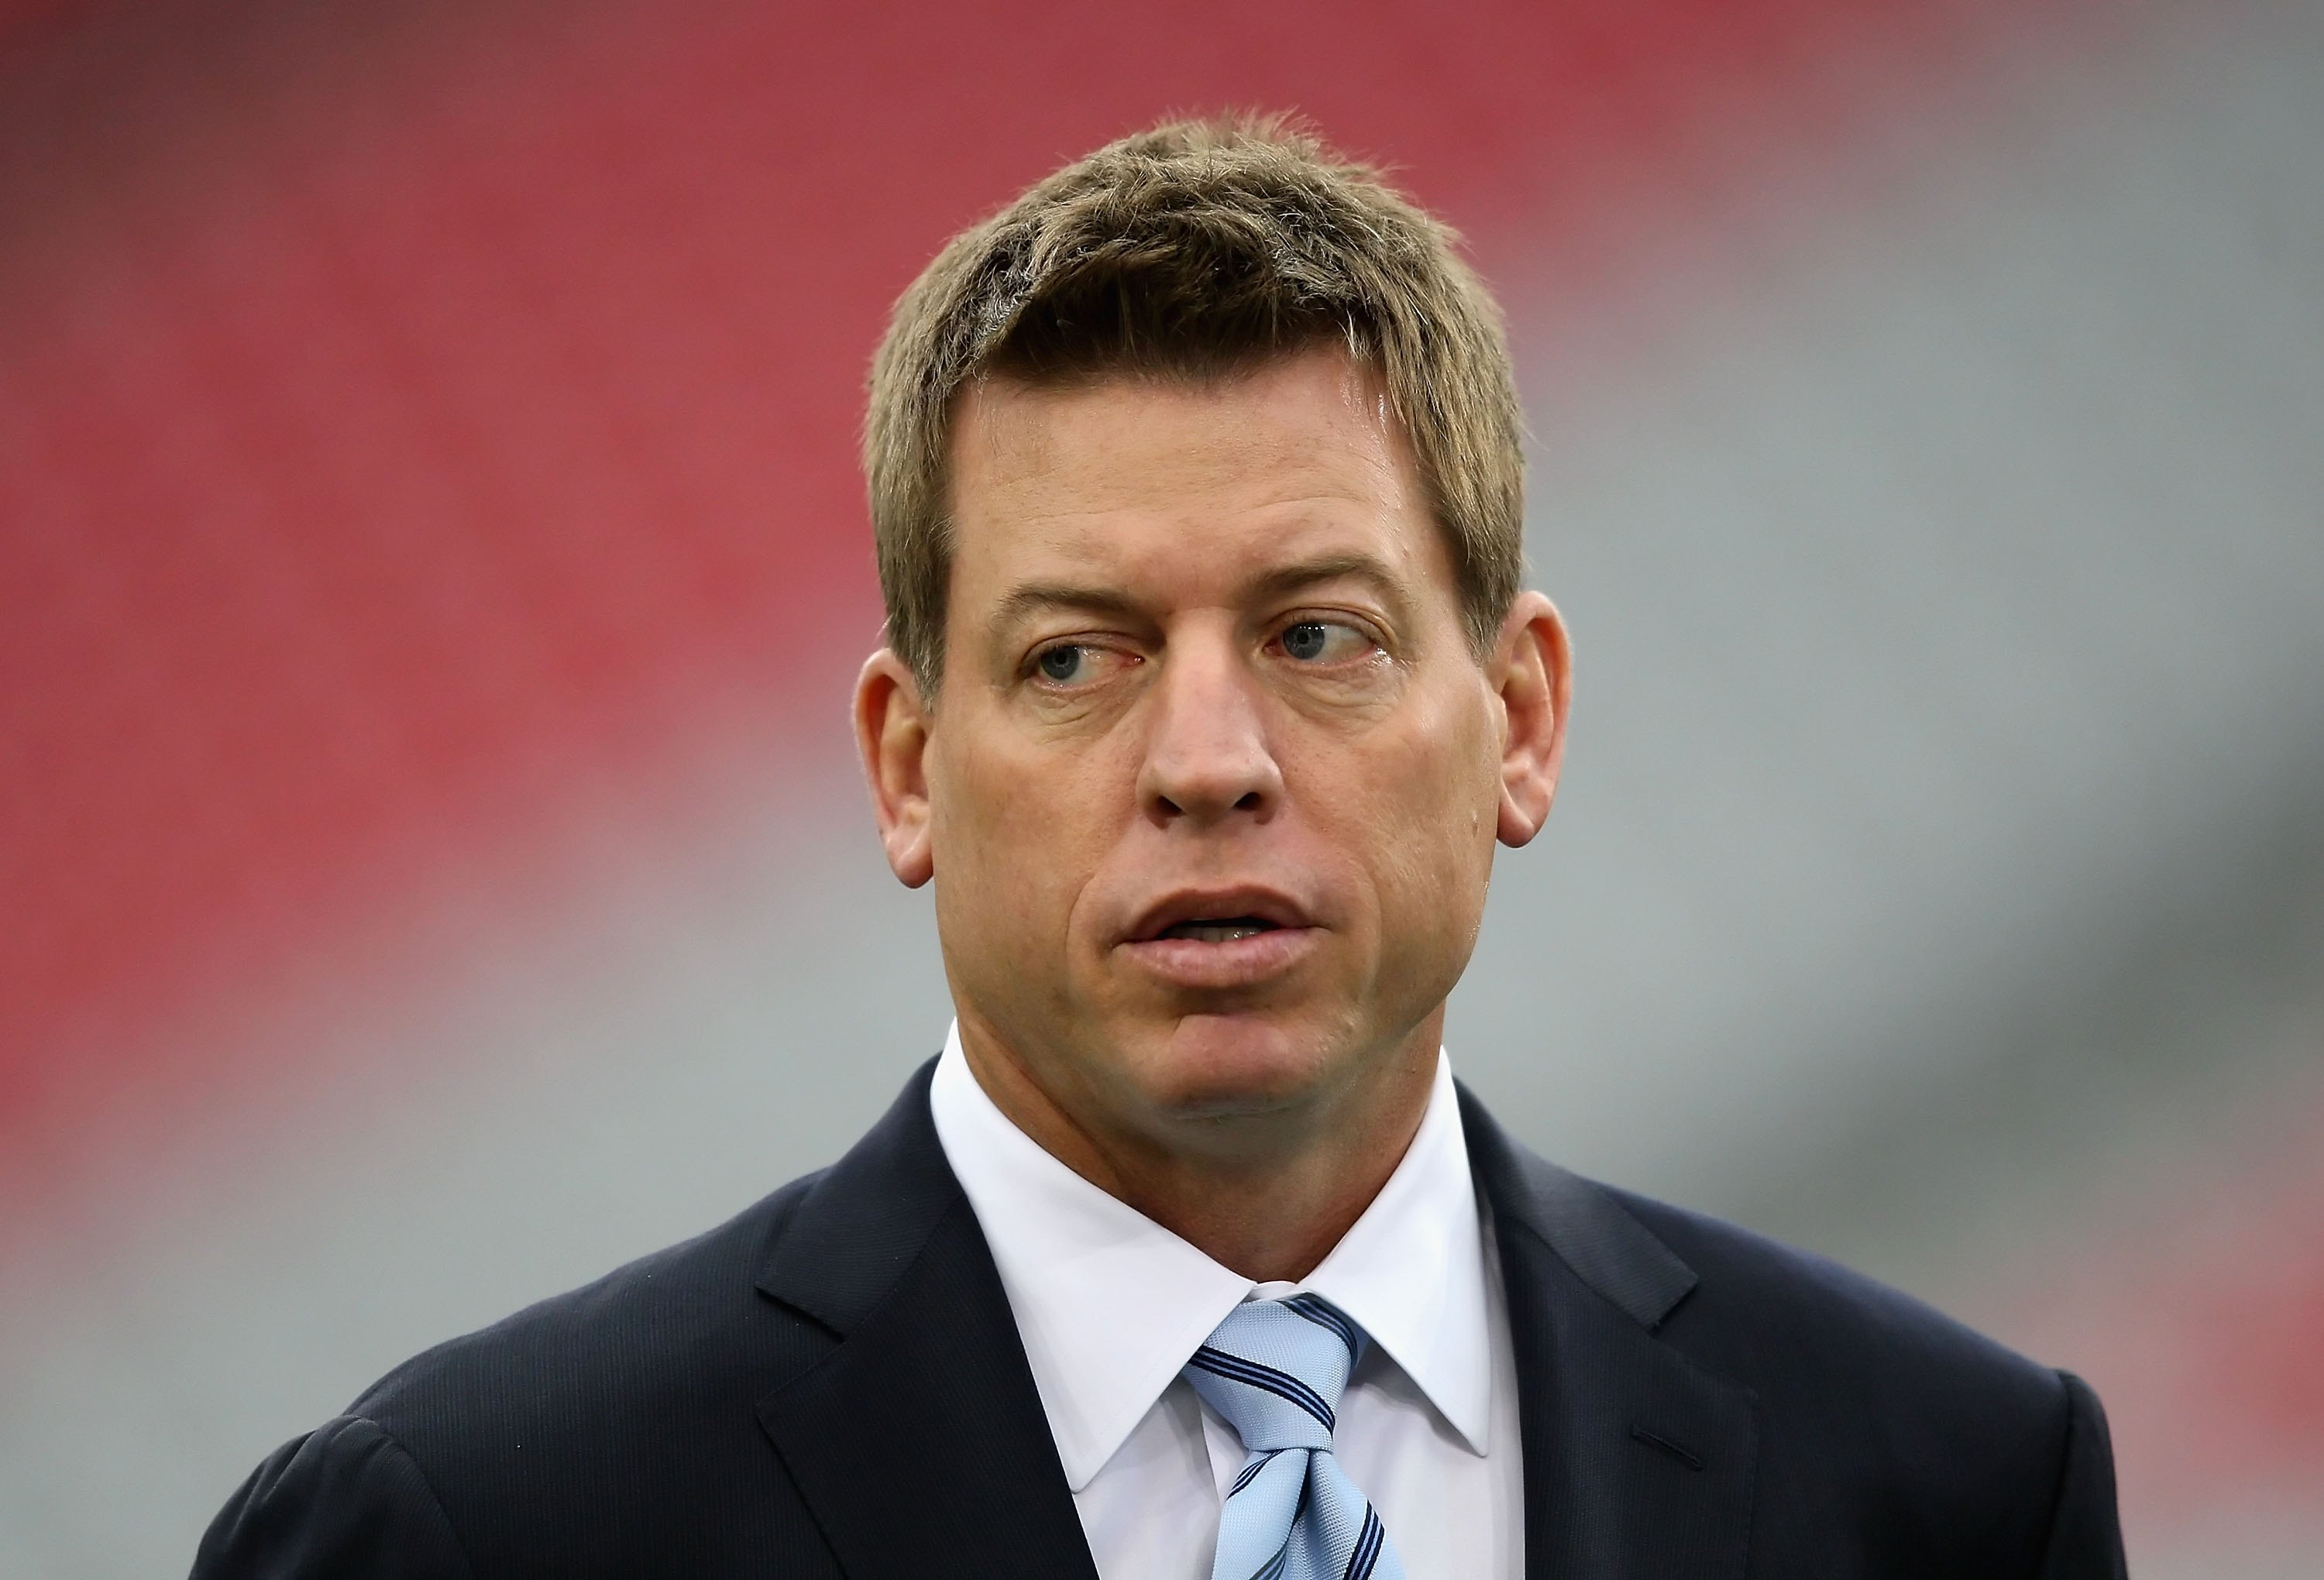 GLENDALE, AZ - JANUARY 10:  Troy Aikman attends the 2010 NFC wild-card playoff game between the Green Bay Packers the Arizona Cardinals at the Universtity of Phoenix Stadium on January 10, 2010 in Glendale, Arizona.  The Cardinals defeated the Packers  51